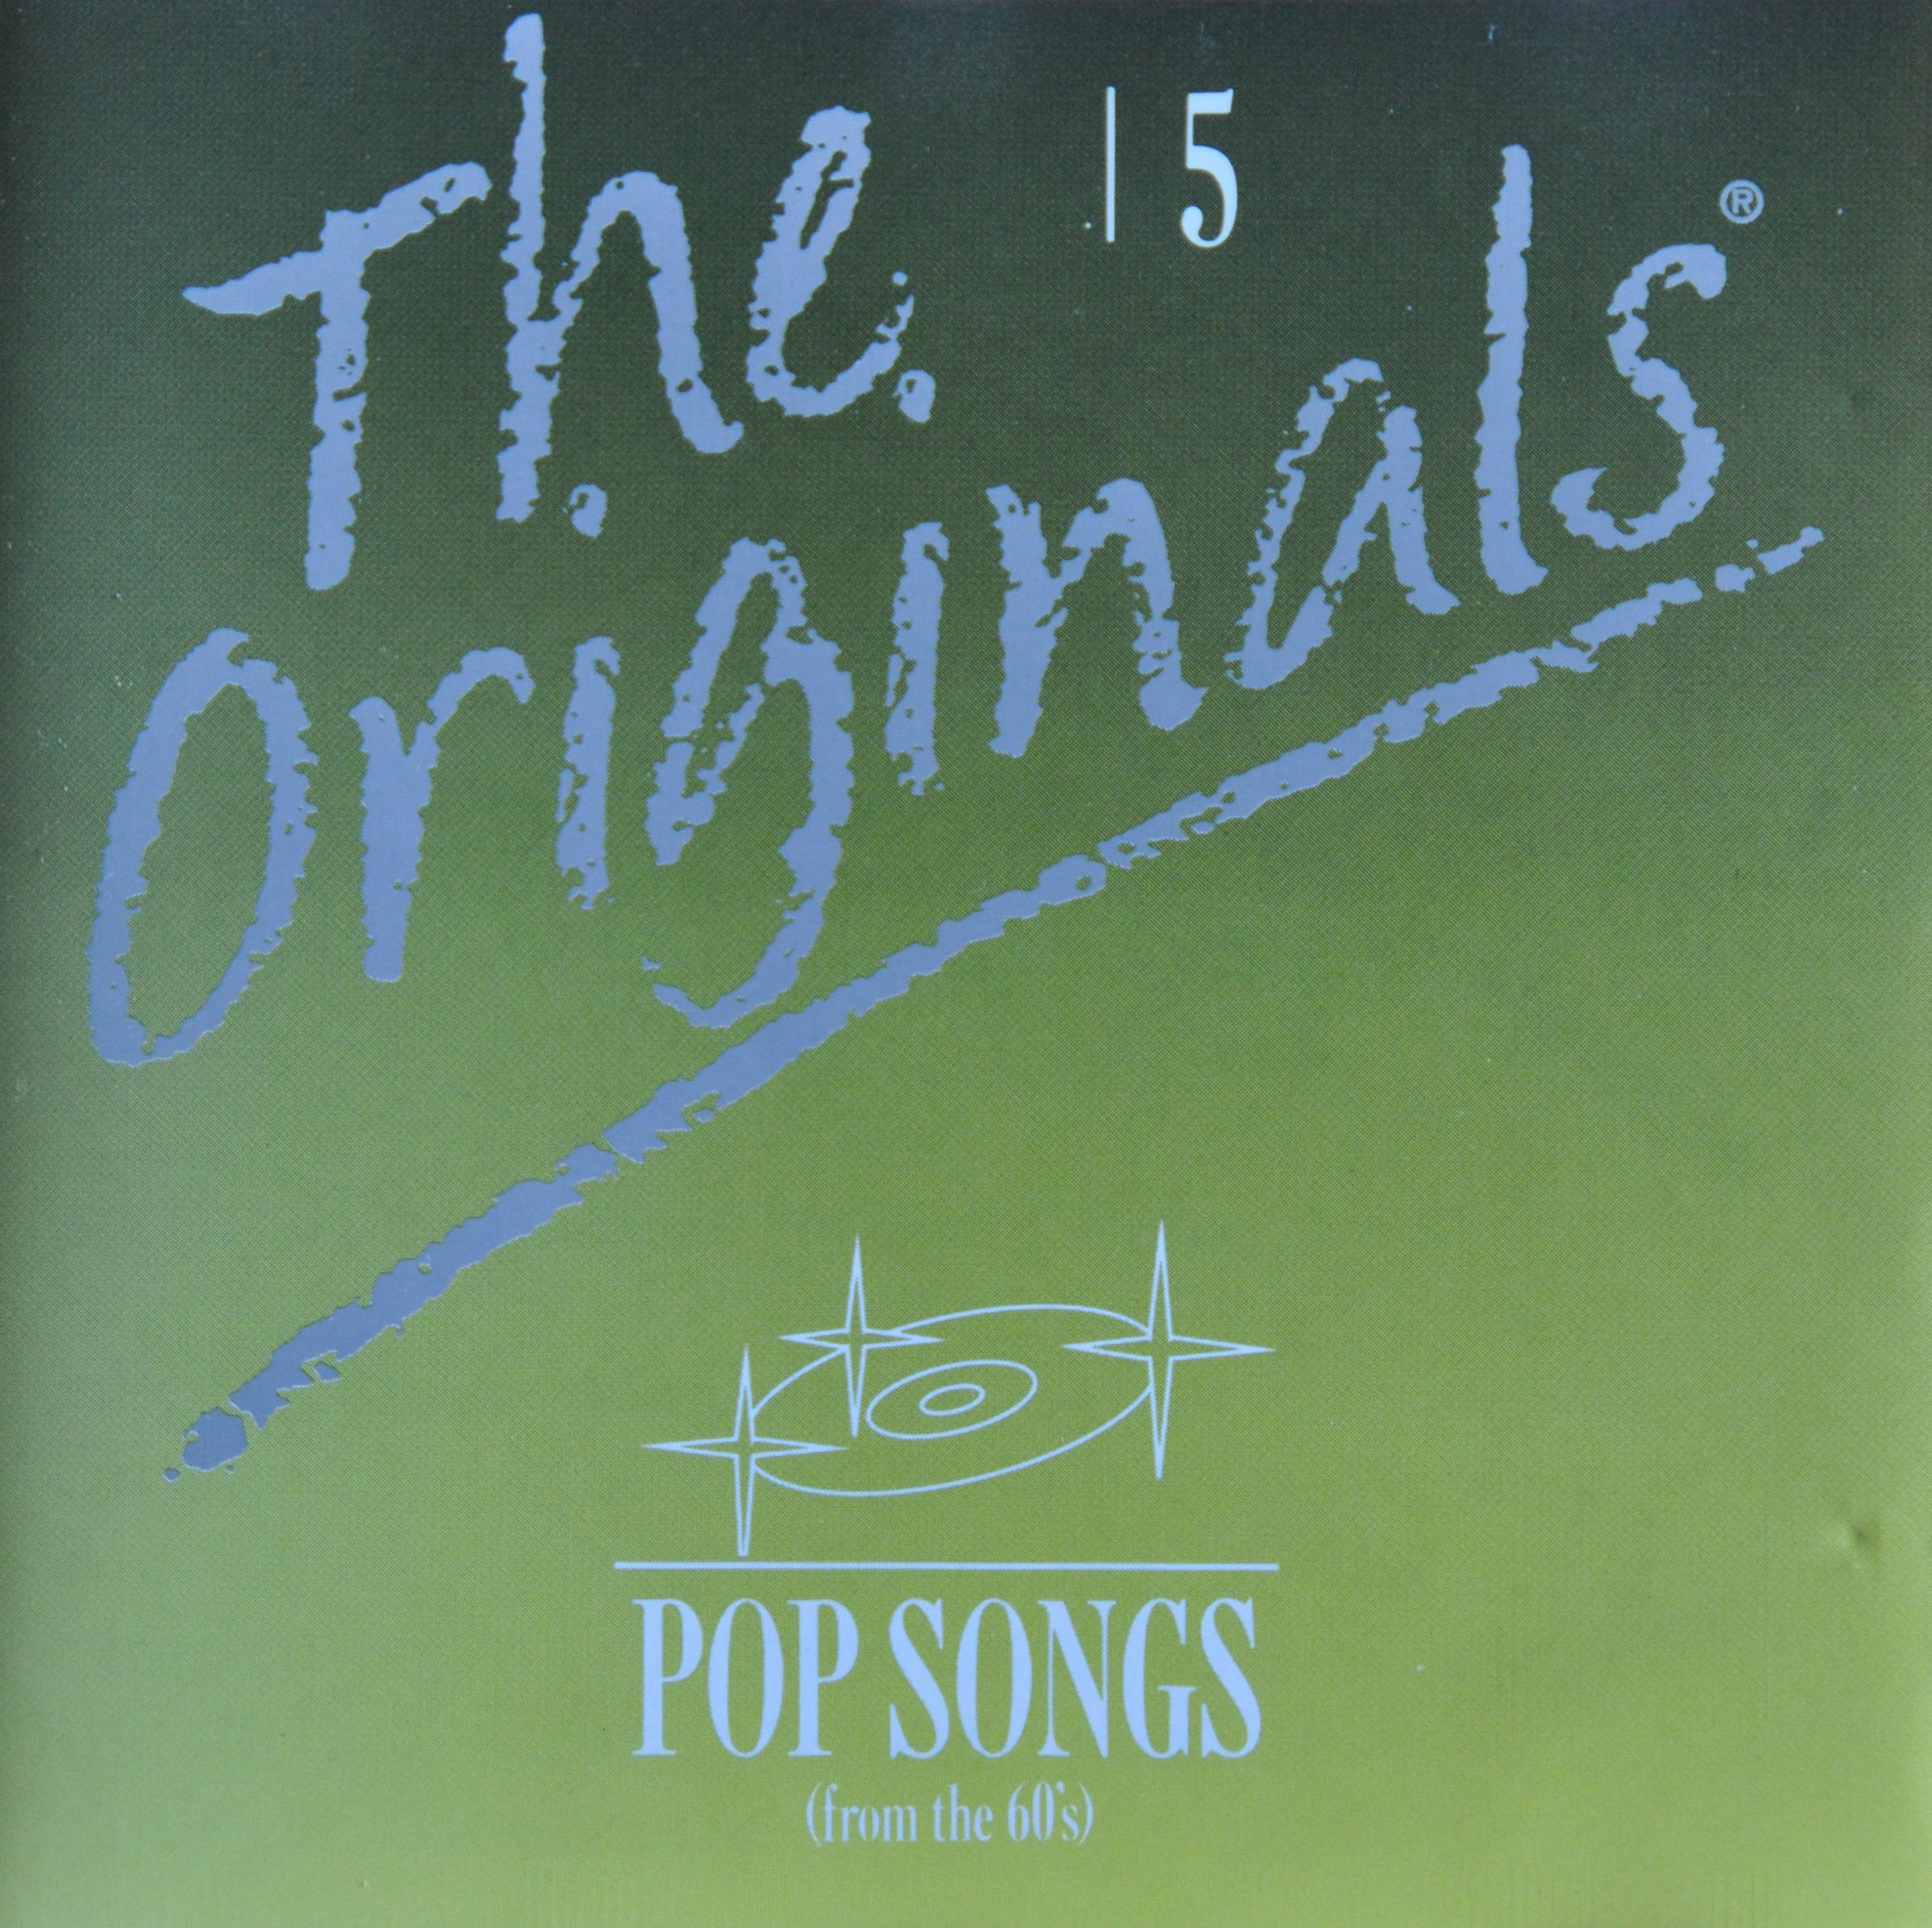 jaquettes2/The-Originals_05_Pop-Songs.jpg